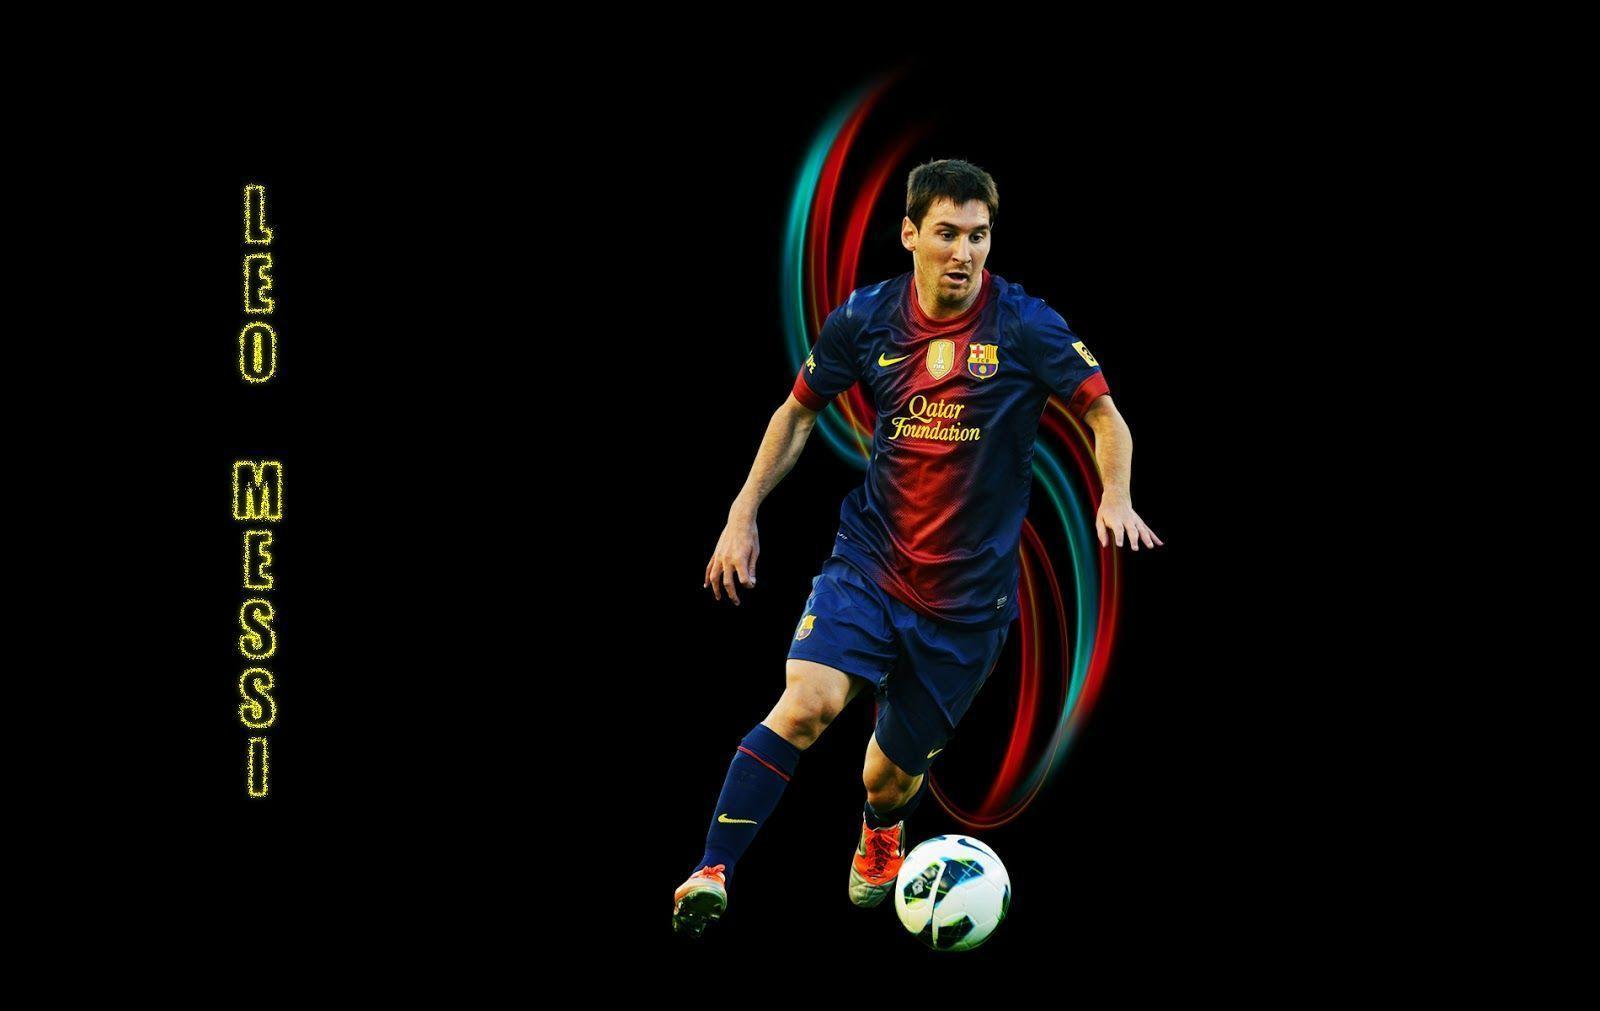 Messi HD Wallpapers 1080p 2017